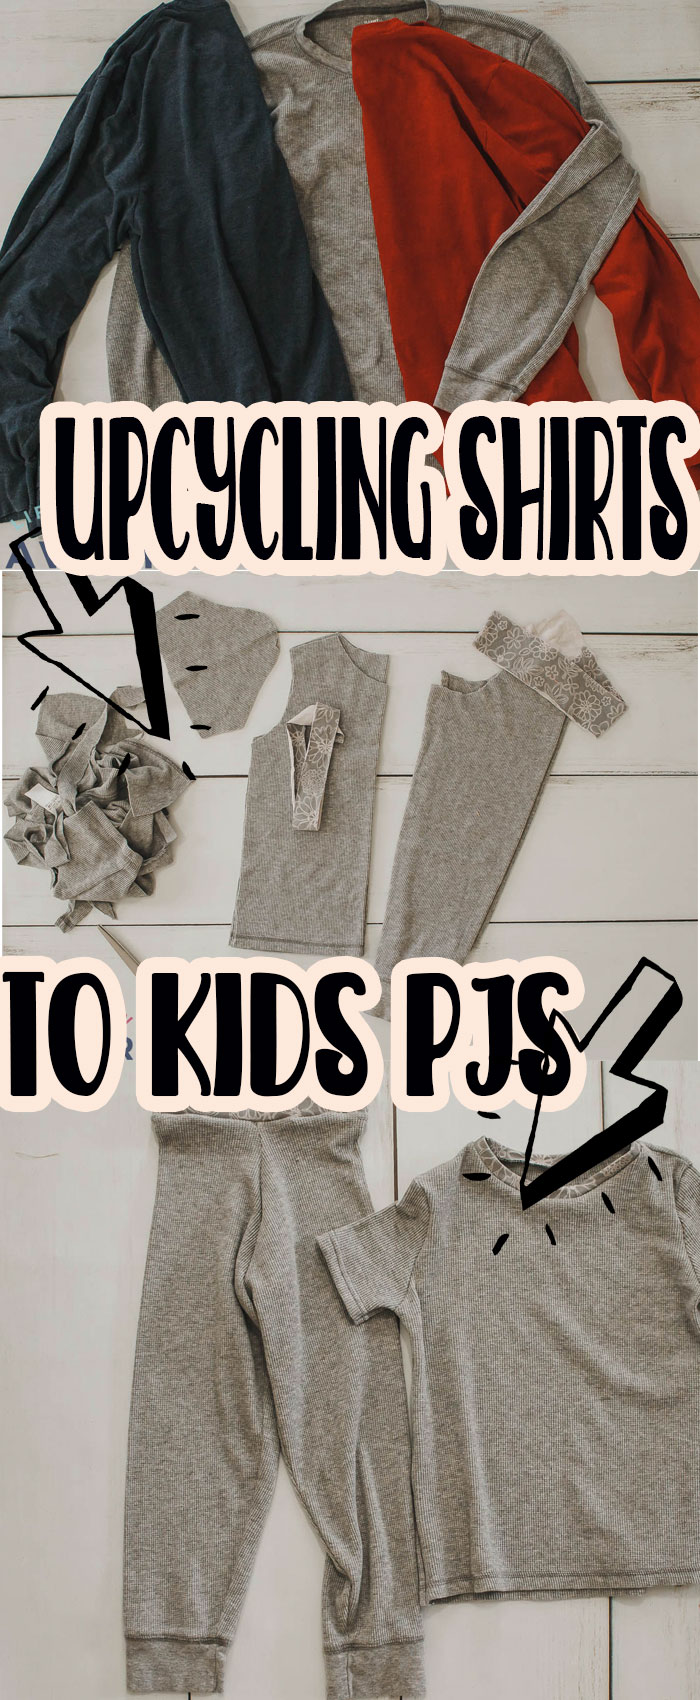 Great ideas for old shirt uses. Upcycle tshirt = Toddler PJ's! I've been reusing men's shirts to make kids pajamas for a decade now and love how easy and economical it is. Plus you can pair this tutorial with my free sewing patterns. via @lifesewsavory